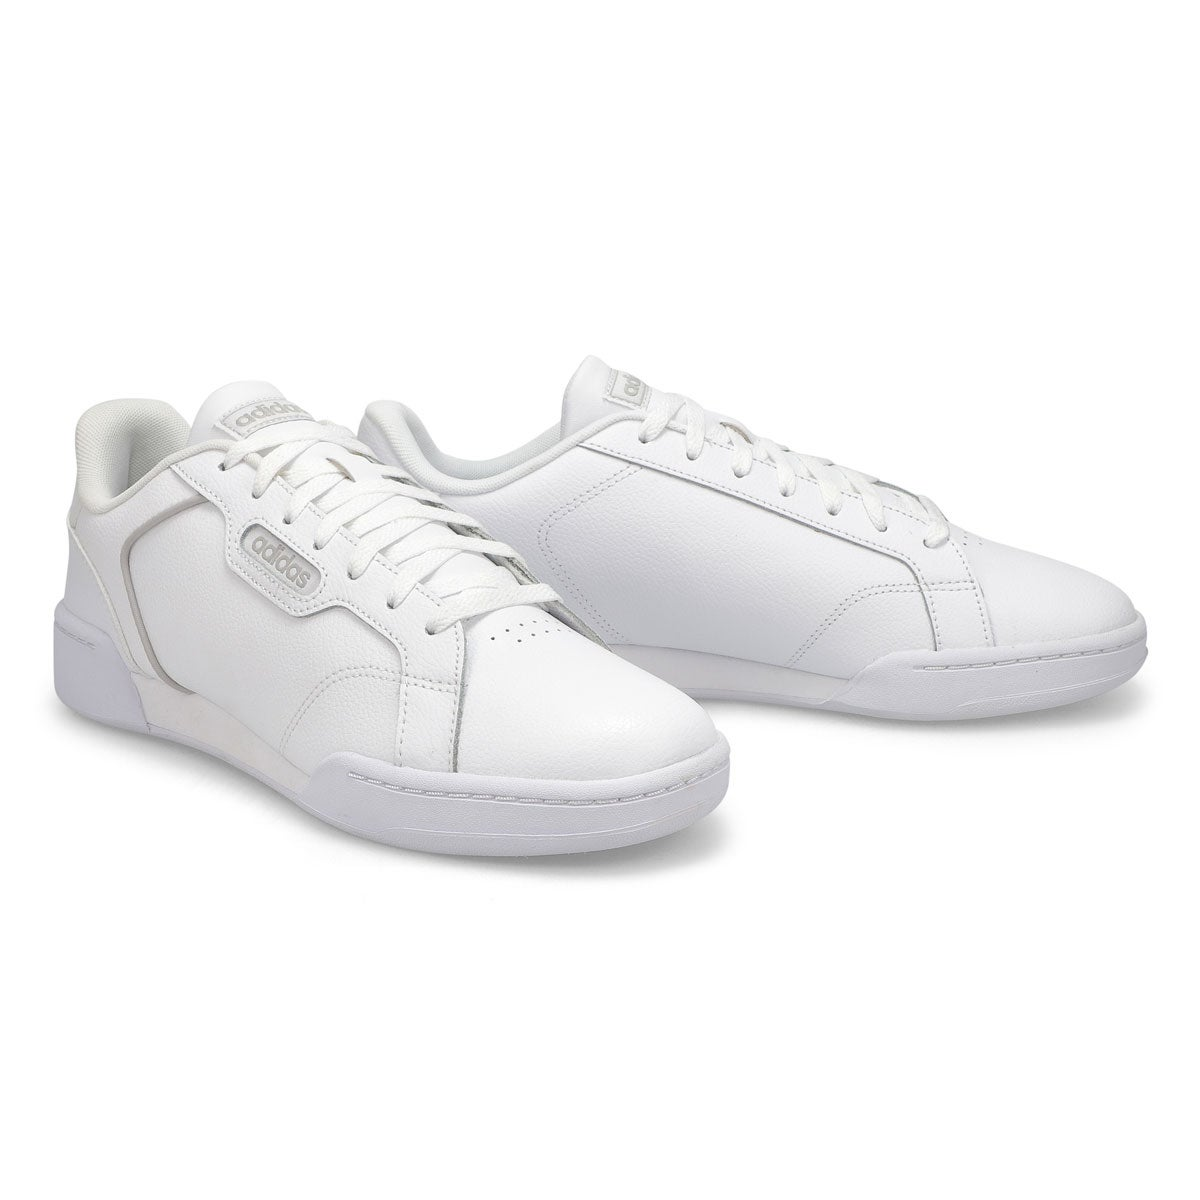 Mns Roguera white lace up sneaker